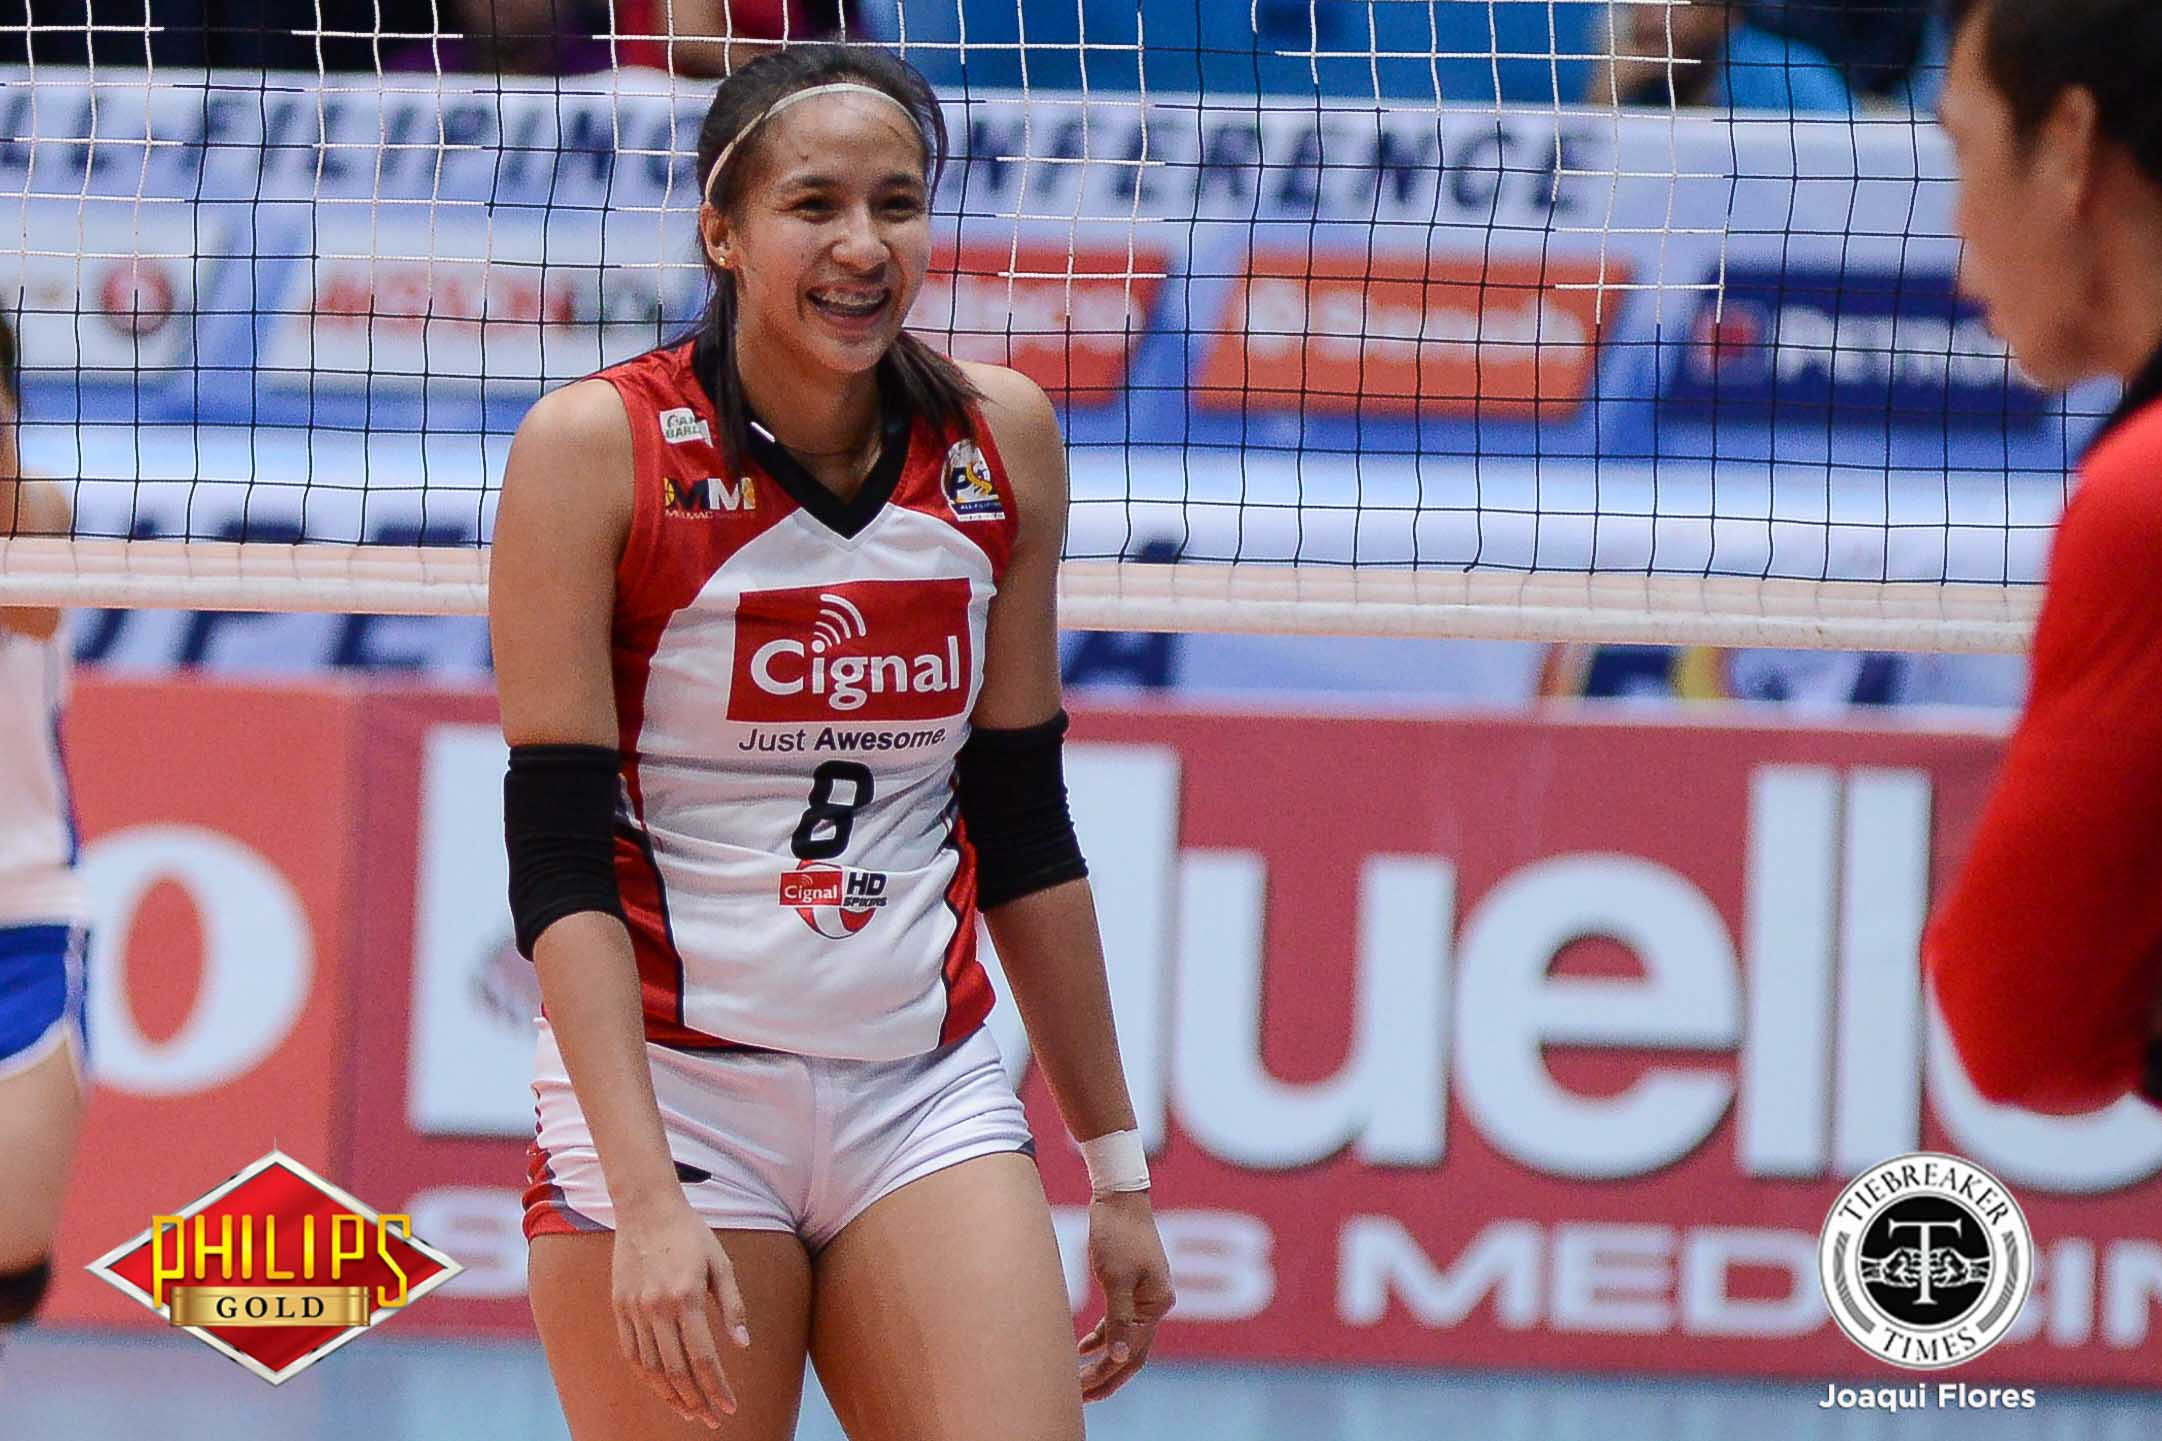 Philippine Sports News - Tiebreaker Times Cignal HD breaks slump, slams Iriga City with third loss News PSL Volleyball  Tamara Kmezic Saam Miyagawa Parley Tupas Jovelyn Gonzaga Jheck Dionela Iriga City Lady Oragons George Pascua Cignal HD Spikers Chooks-to-Go Chie Saet Beth Carey 2017 PSL Season 2017 PSL Grand Prix